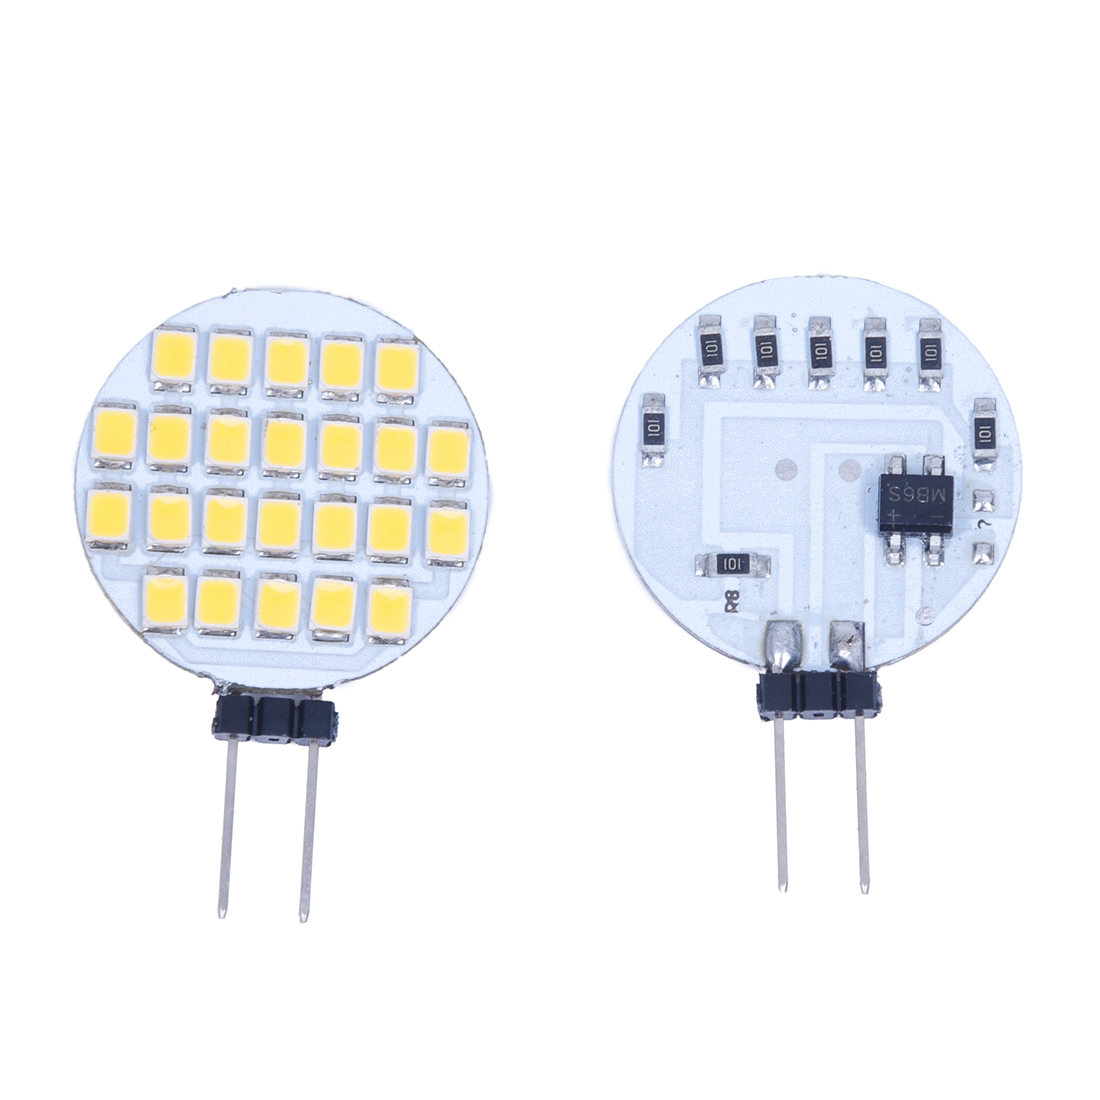 10 g4 warm white 24 led 3528 smd spot light lamp bulb dc 12v dt ebay. Black Bedroom Furniture Sets. Home Design Ideas